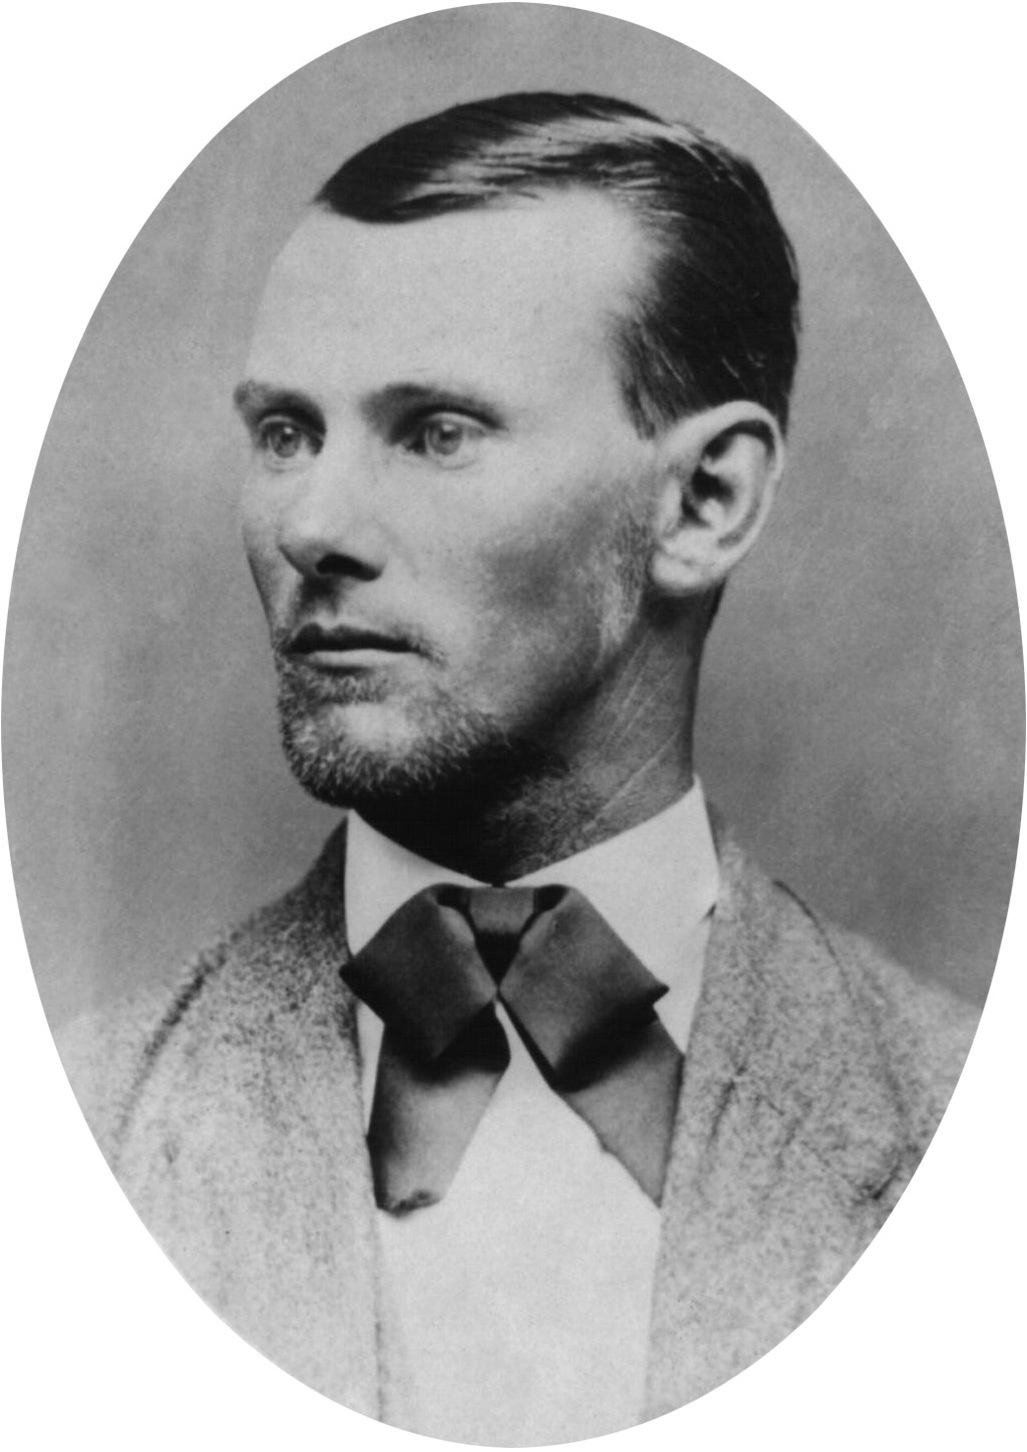 https://i2.wp.com/upload.wikimedia.org/wikipedia/commons/2/22/Jesse_james_portrait.jpg